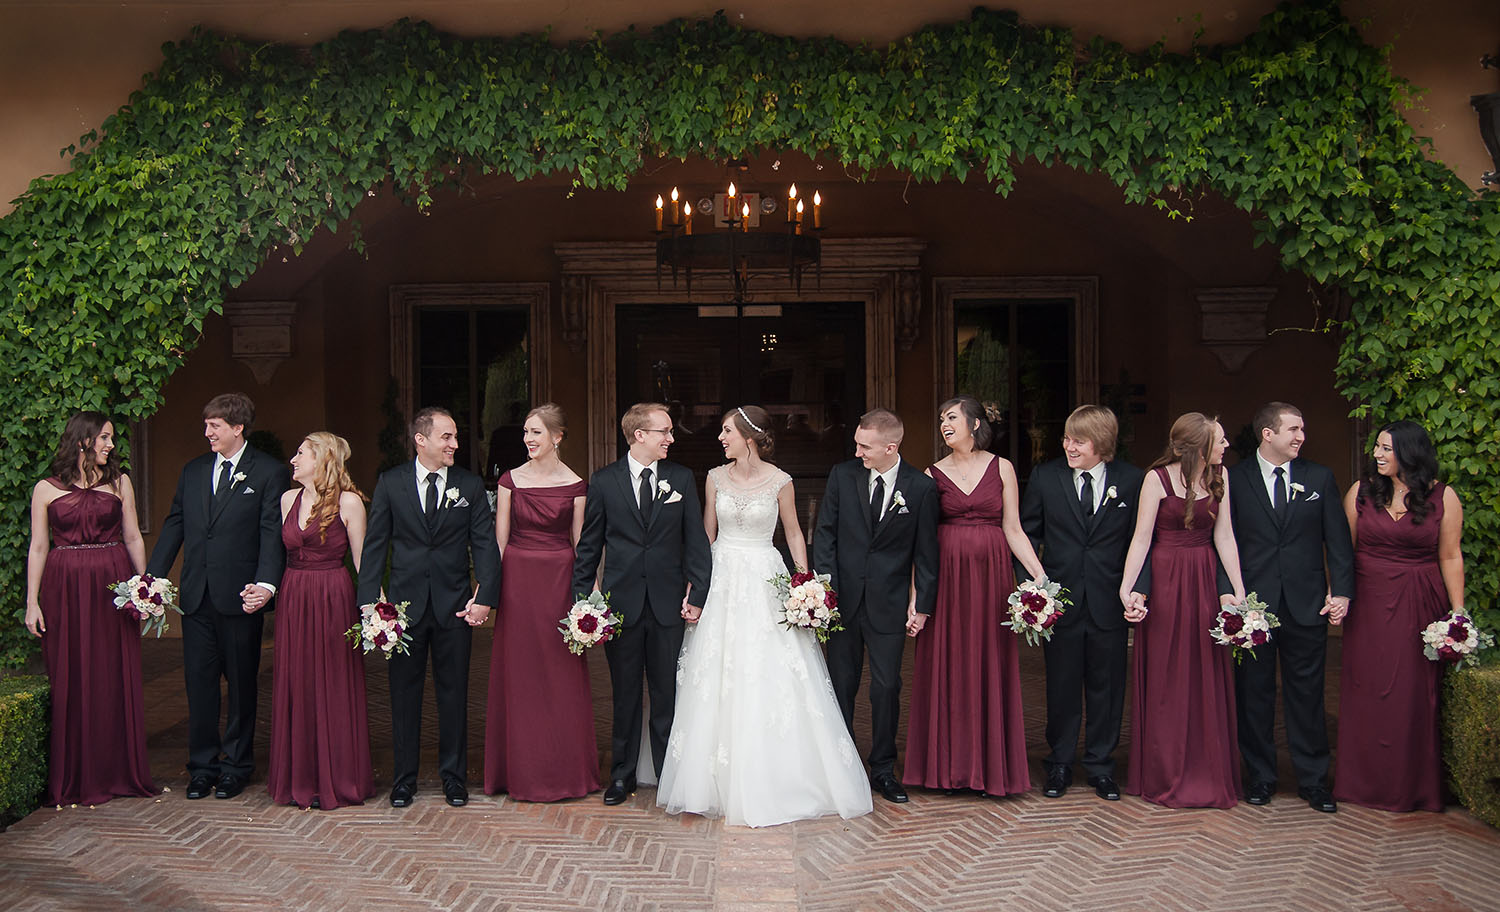 Winter Wedding Bridal Party Pictures To Pin On Pinterest